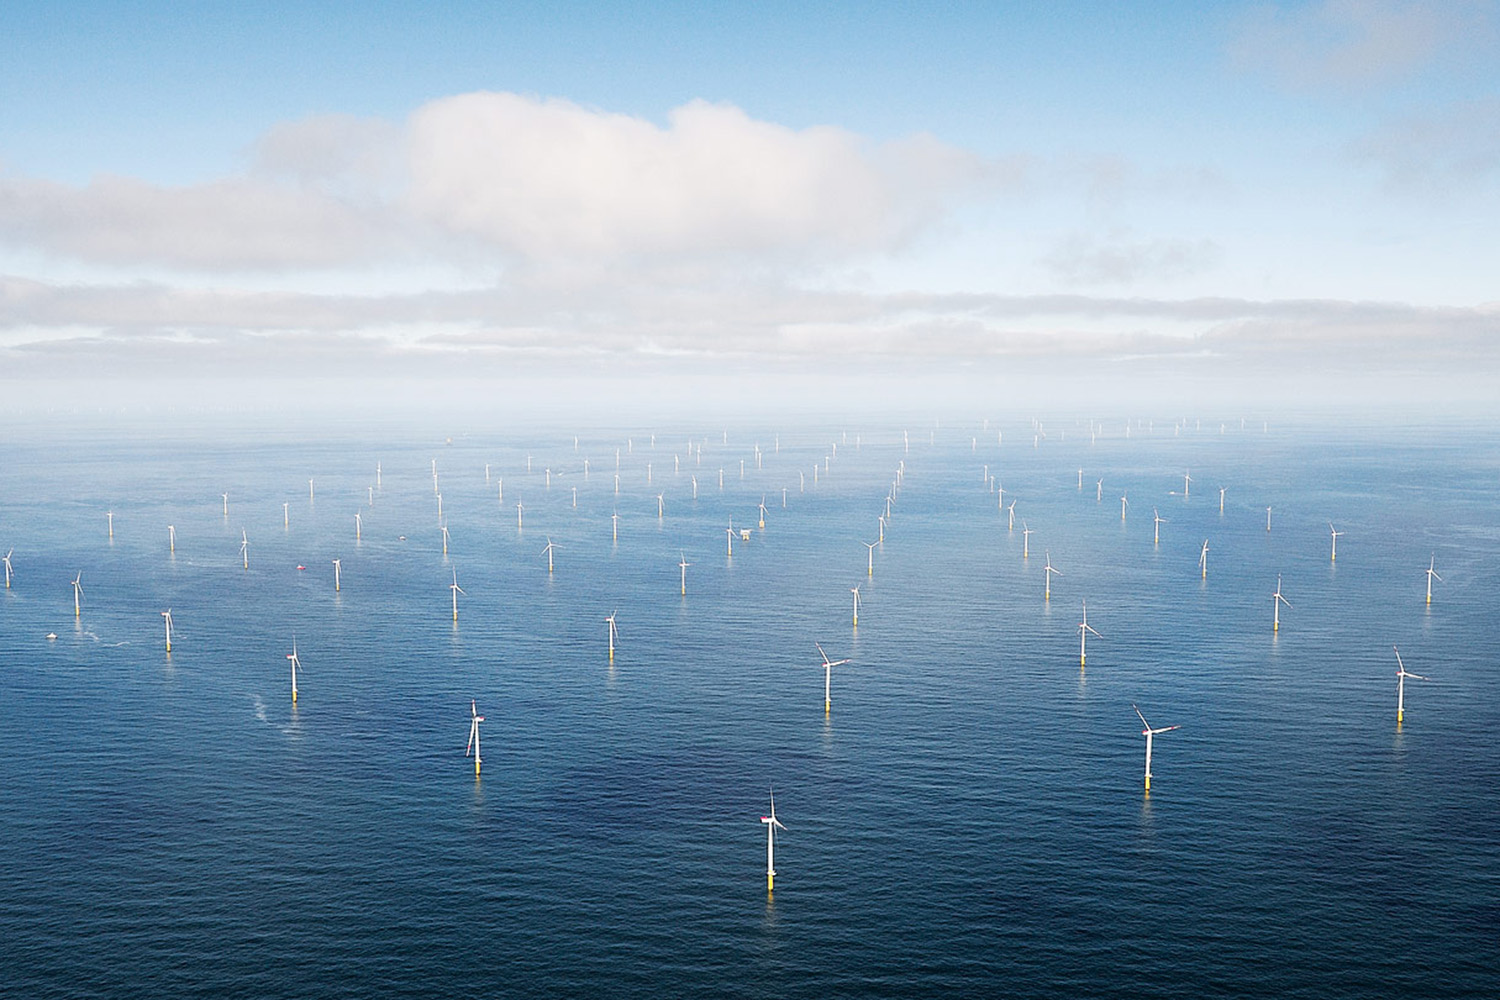 Strategic Geographic Location - With commercial offshore wind leases located off the coasts of NJ, DE, MD, VA, and NC at a travel time of less than 20 hours by installation vessels traveling at 10 knots, Virginia's port assets are strategically located in the Mid-Atlantic with direct open access.